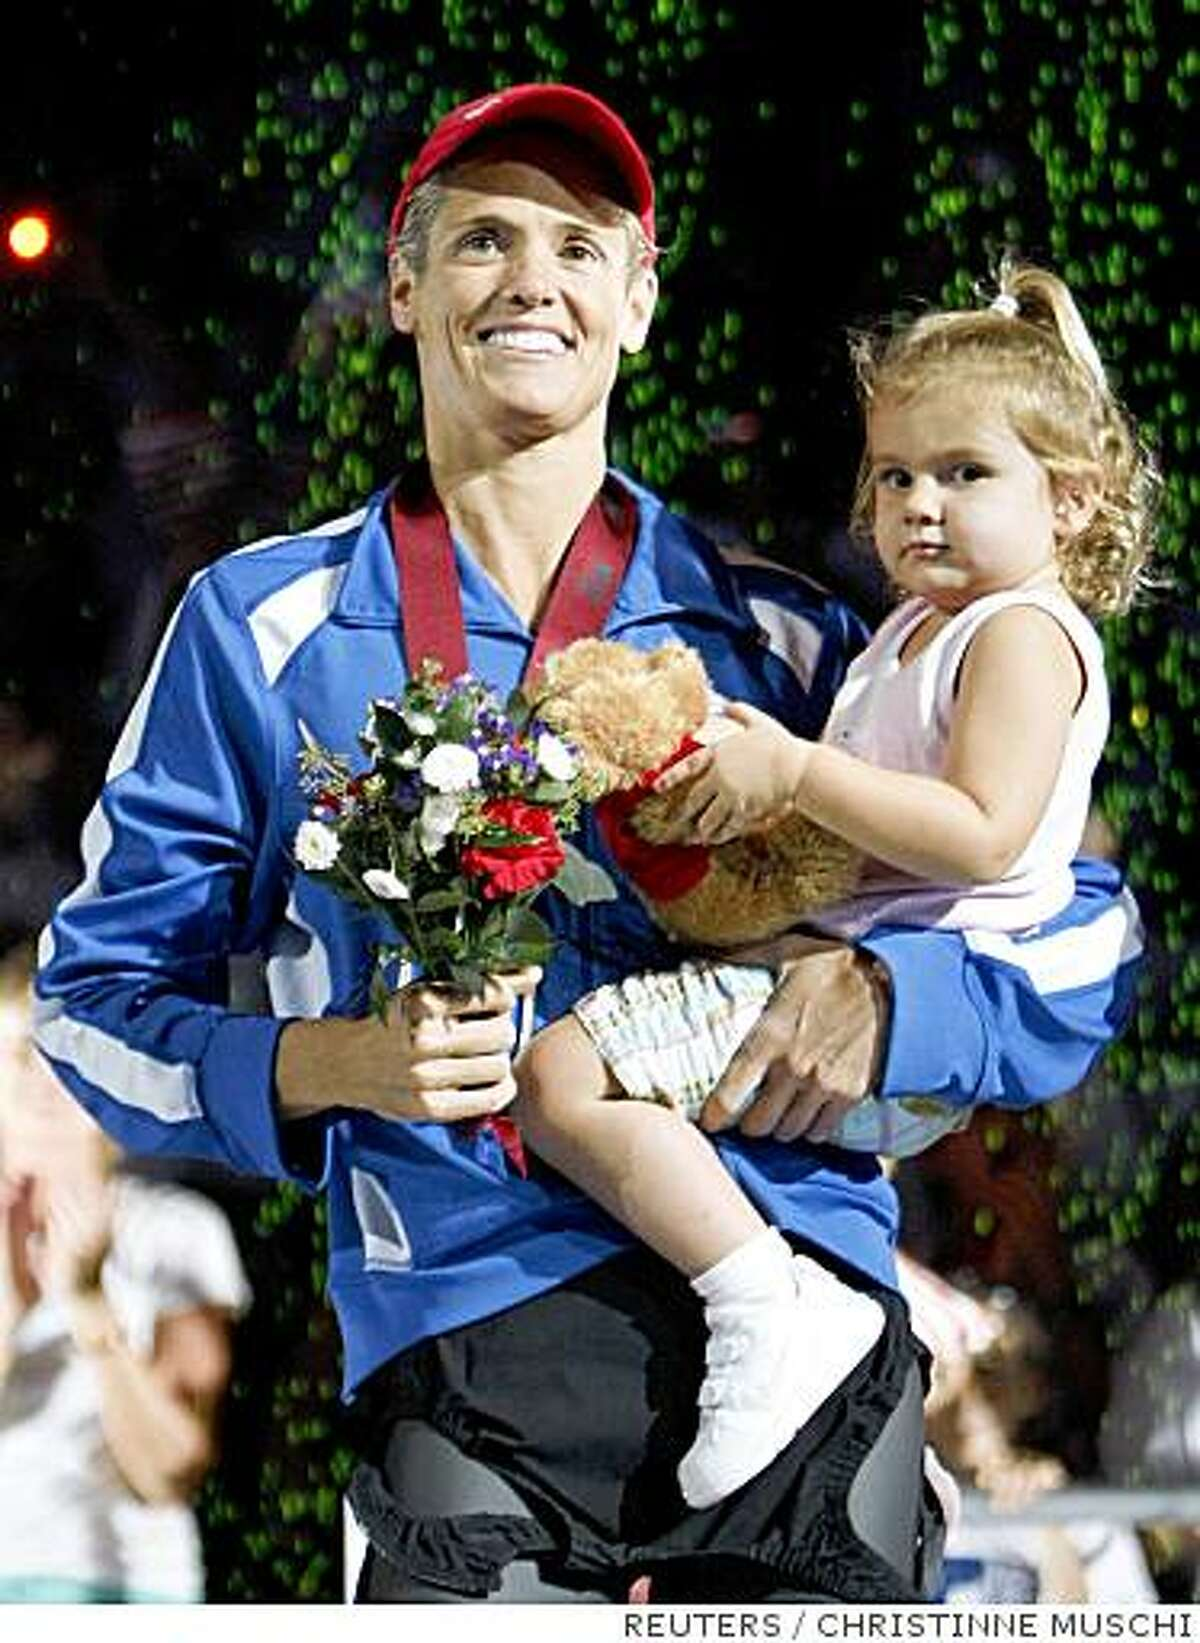 Dara Torres holds her daughter Tessa after winning the Women's 100m freestyle and qualifying for her fifth Olympic games at the U.S. Olympic Swimming Trials in Omaha, Nebraska, July 4, 2008. REUTERS/Christinne Muschi (UNITED STATES) (BEIJING OLYMPICS 2008 PREVIEW)